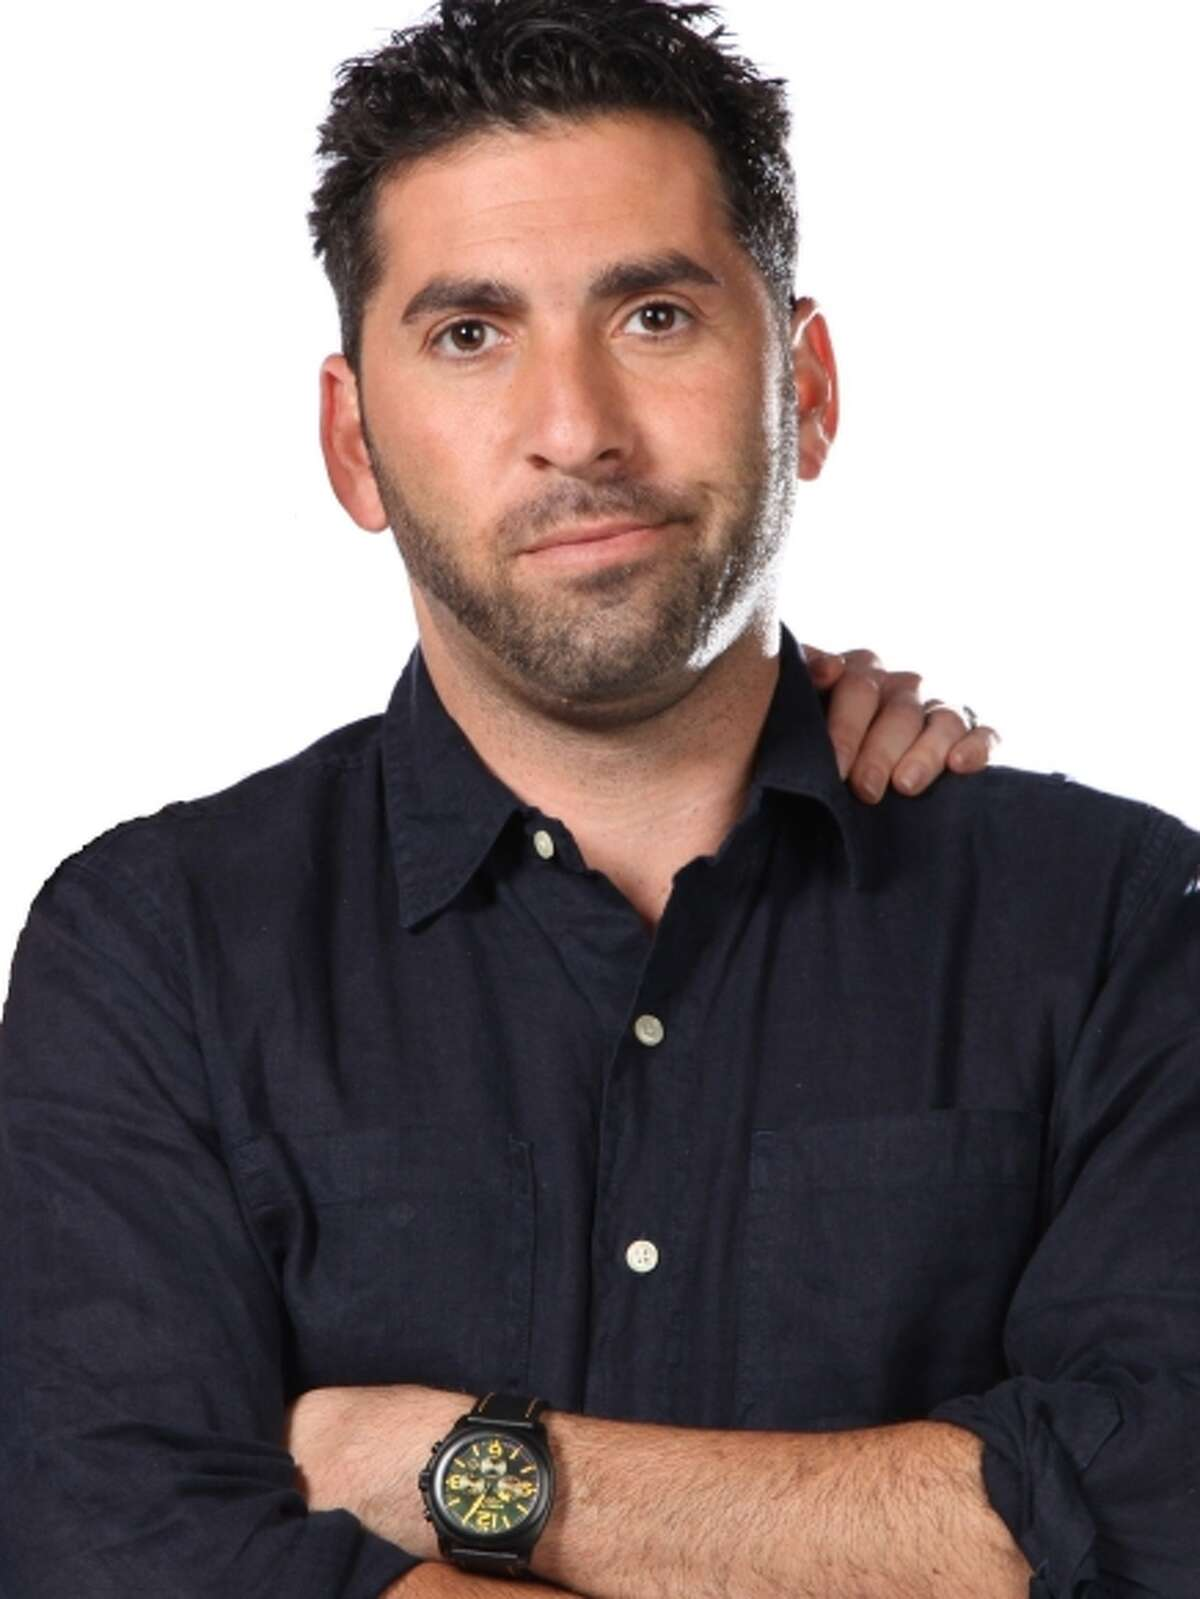 Kevin Klein, the new morning host for Live 105.